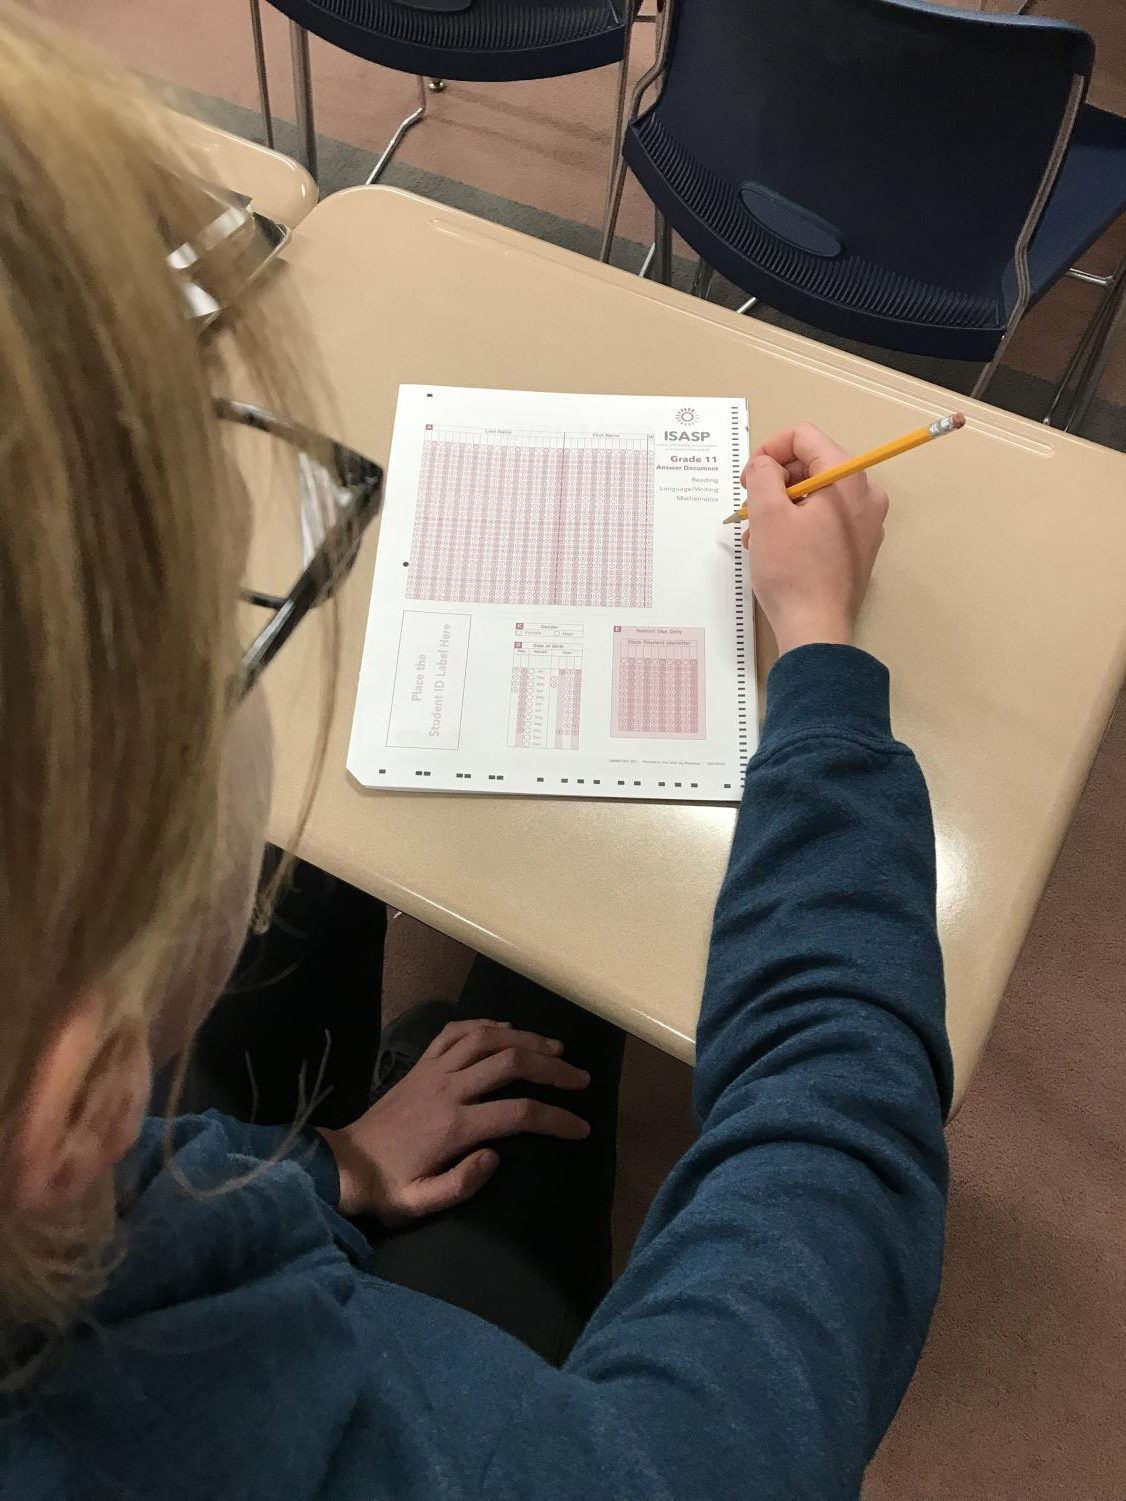 Natalie Cremer, a senior at PV, examines the new Iowa assessments known as the ISASP